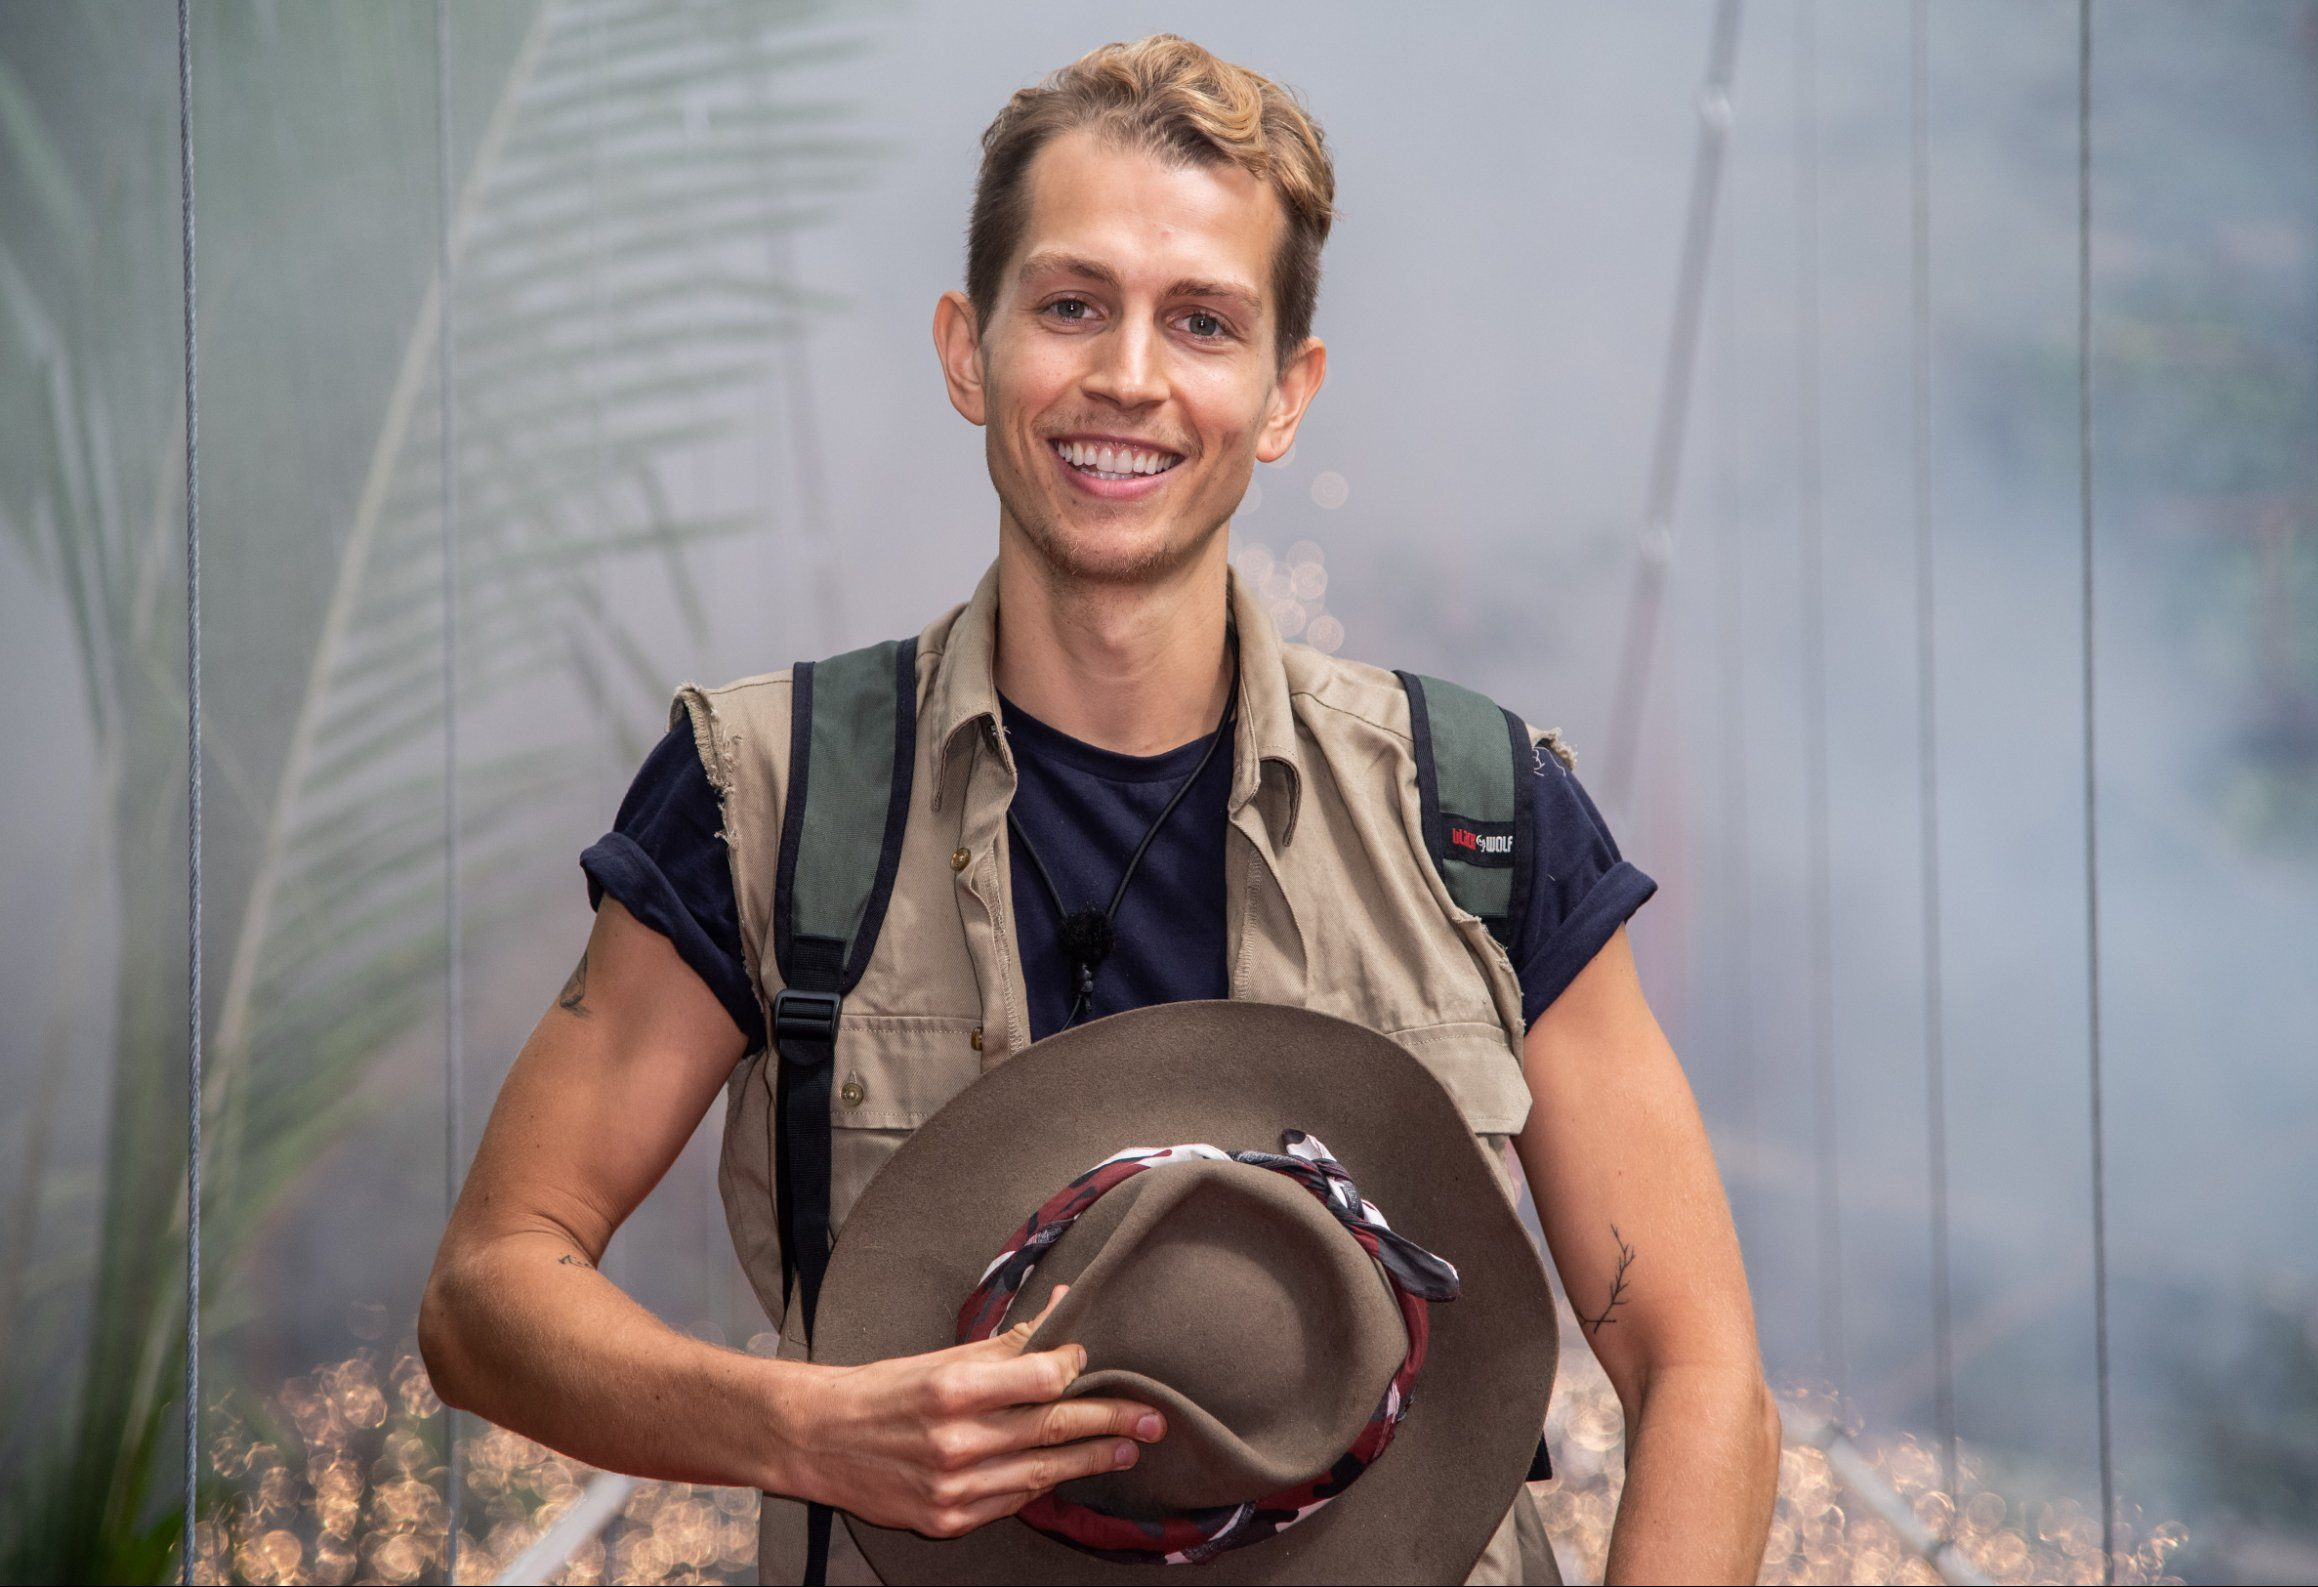 I'm A Celeb's James McVey has not yet spoken to his The Vamps bandmates